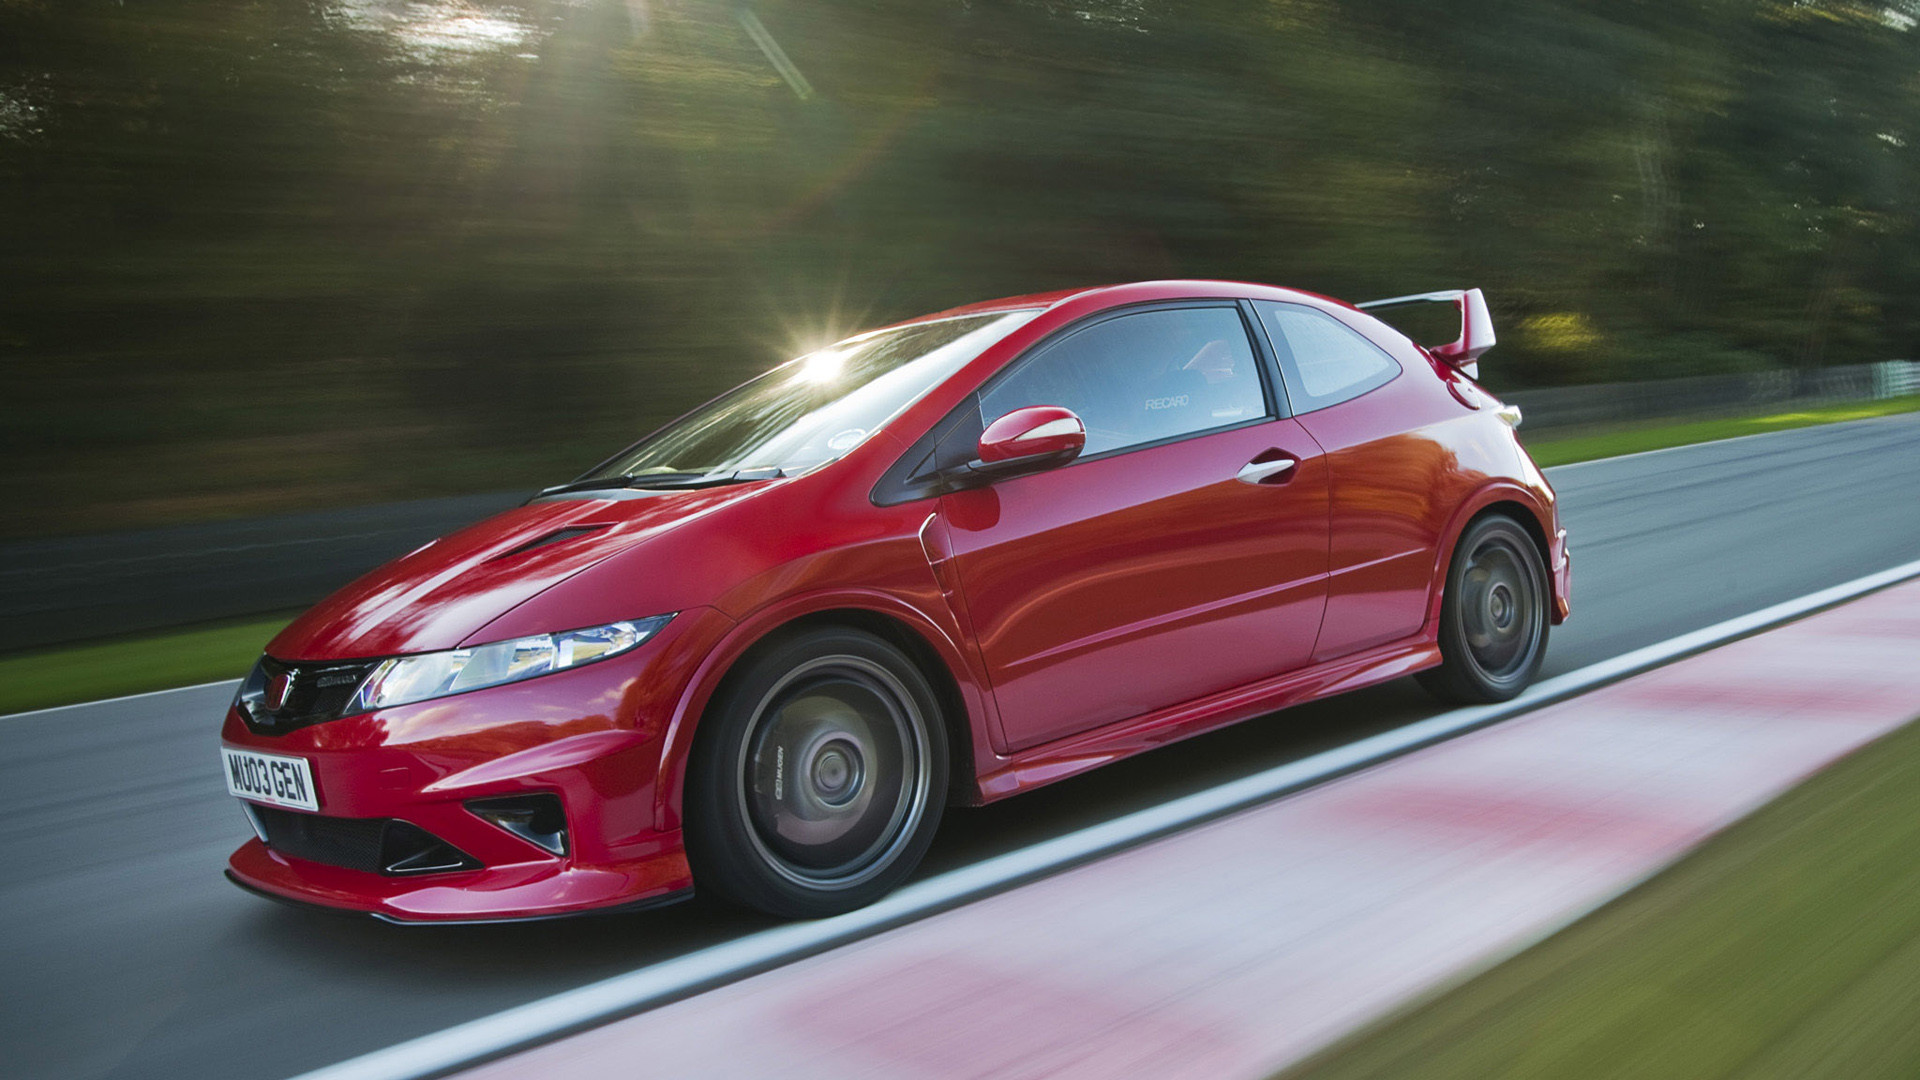 Res: 1920x1080, 2009 Honda Civic Type R Prototype by Mugen picture.